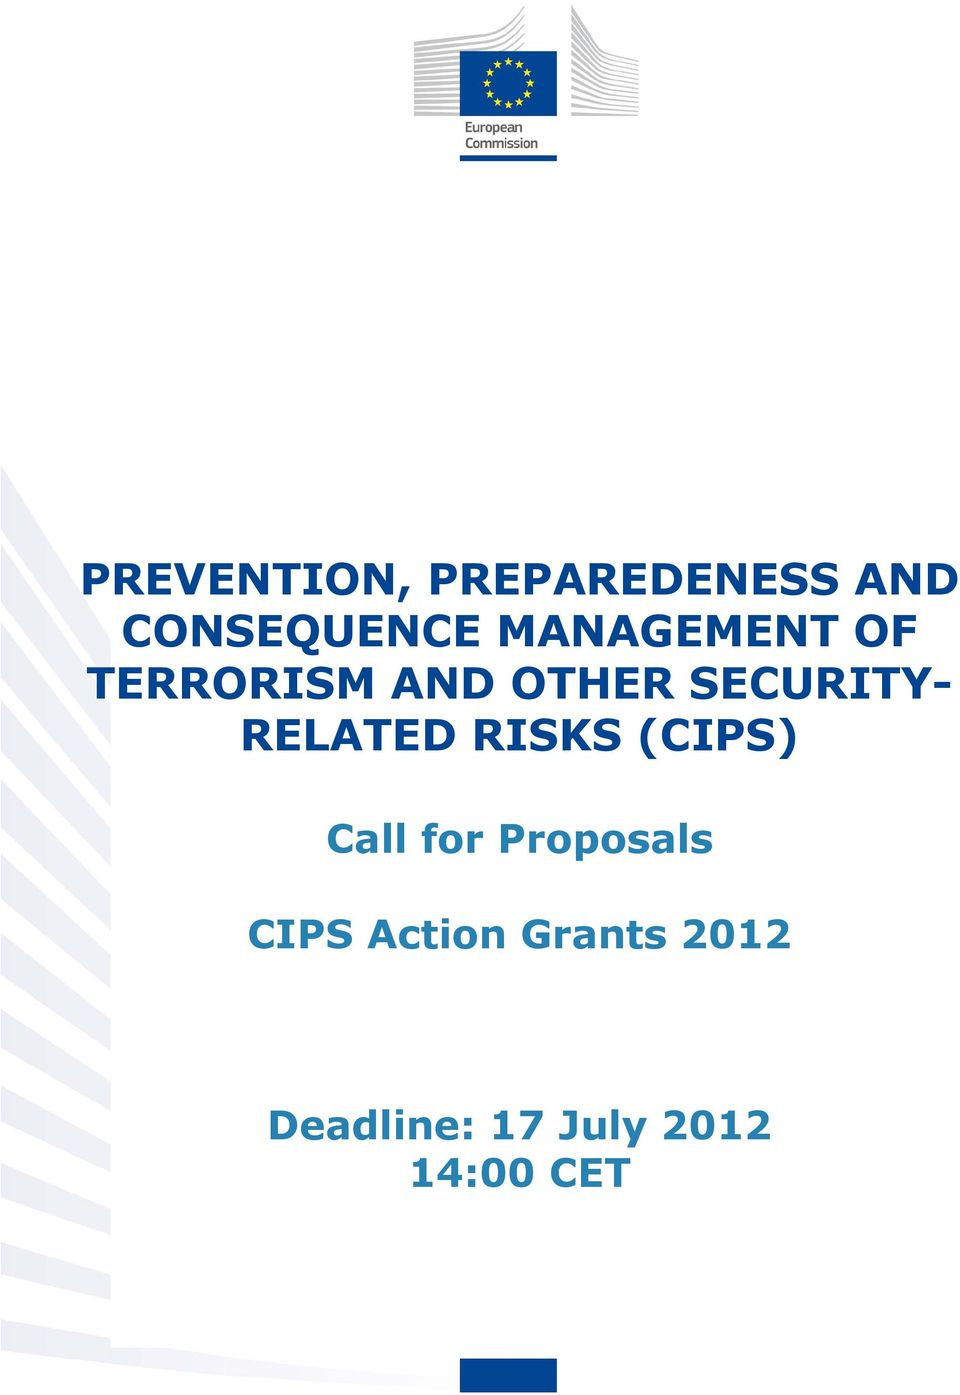 RELATED RISKS (CIPS) Call for Proposals CIPS